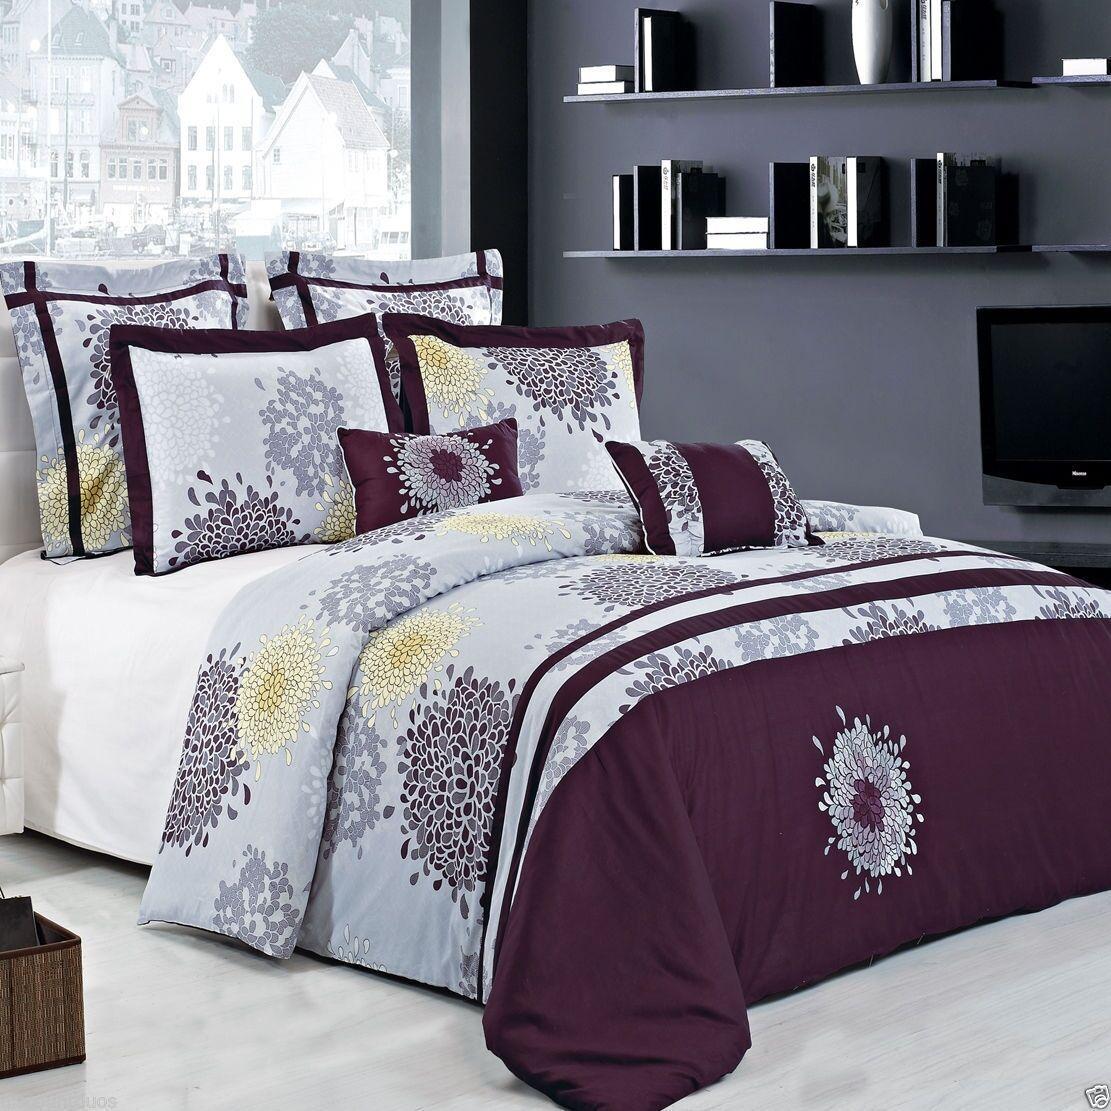 8pc Fifi Cotton Embroidered Duvet Cover Bedding Set AND Comforter - ALL SIZES